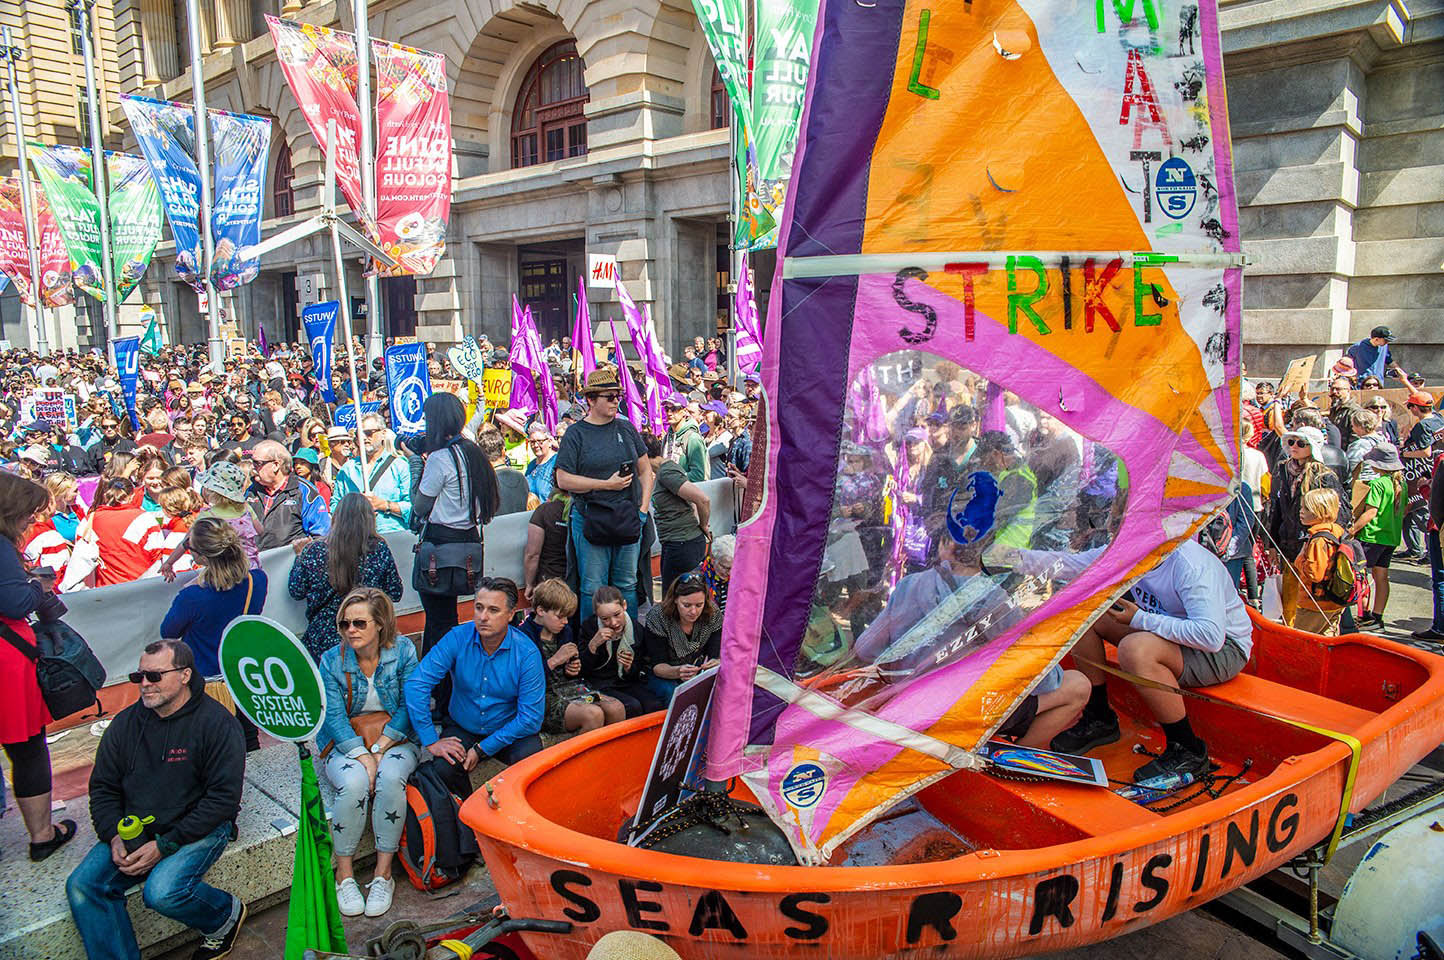 A large crowd fills a city square. A bright orange and pink painted boat sits in the centre with 'Strike' written on the sail and 'Seas R Rising' written on the side of the boat. Surrounding protesters hold various banners and placards.